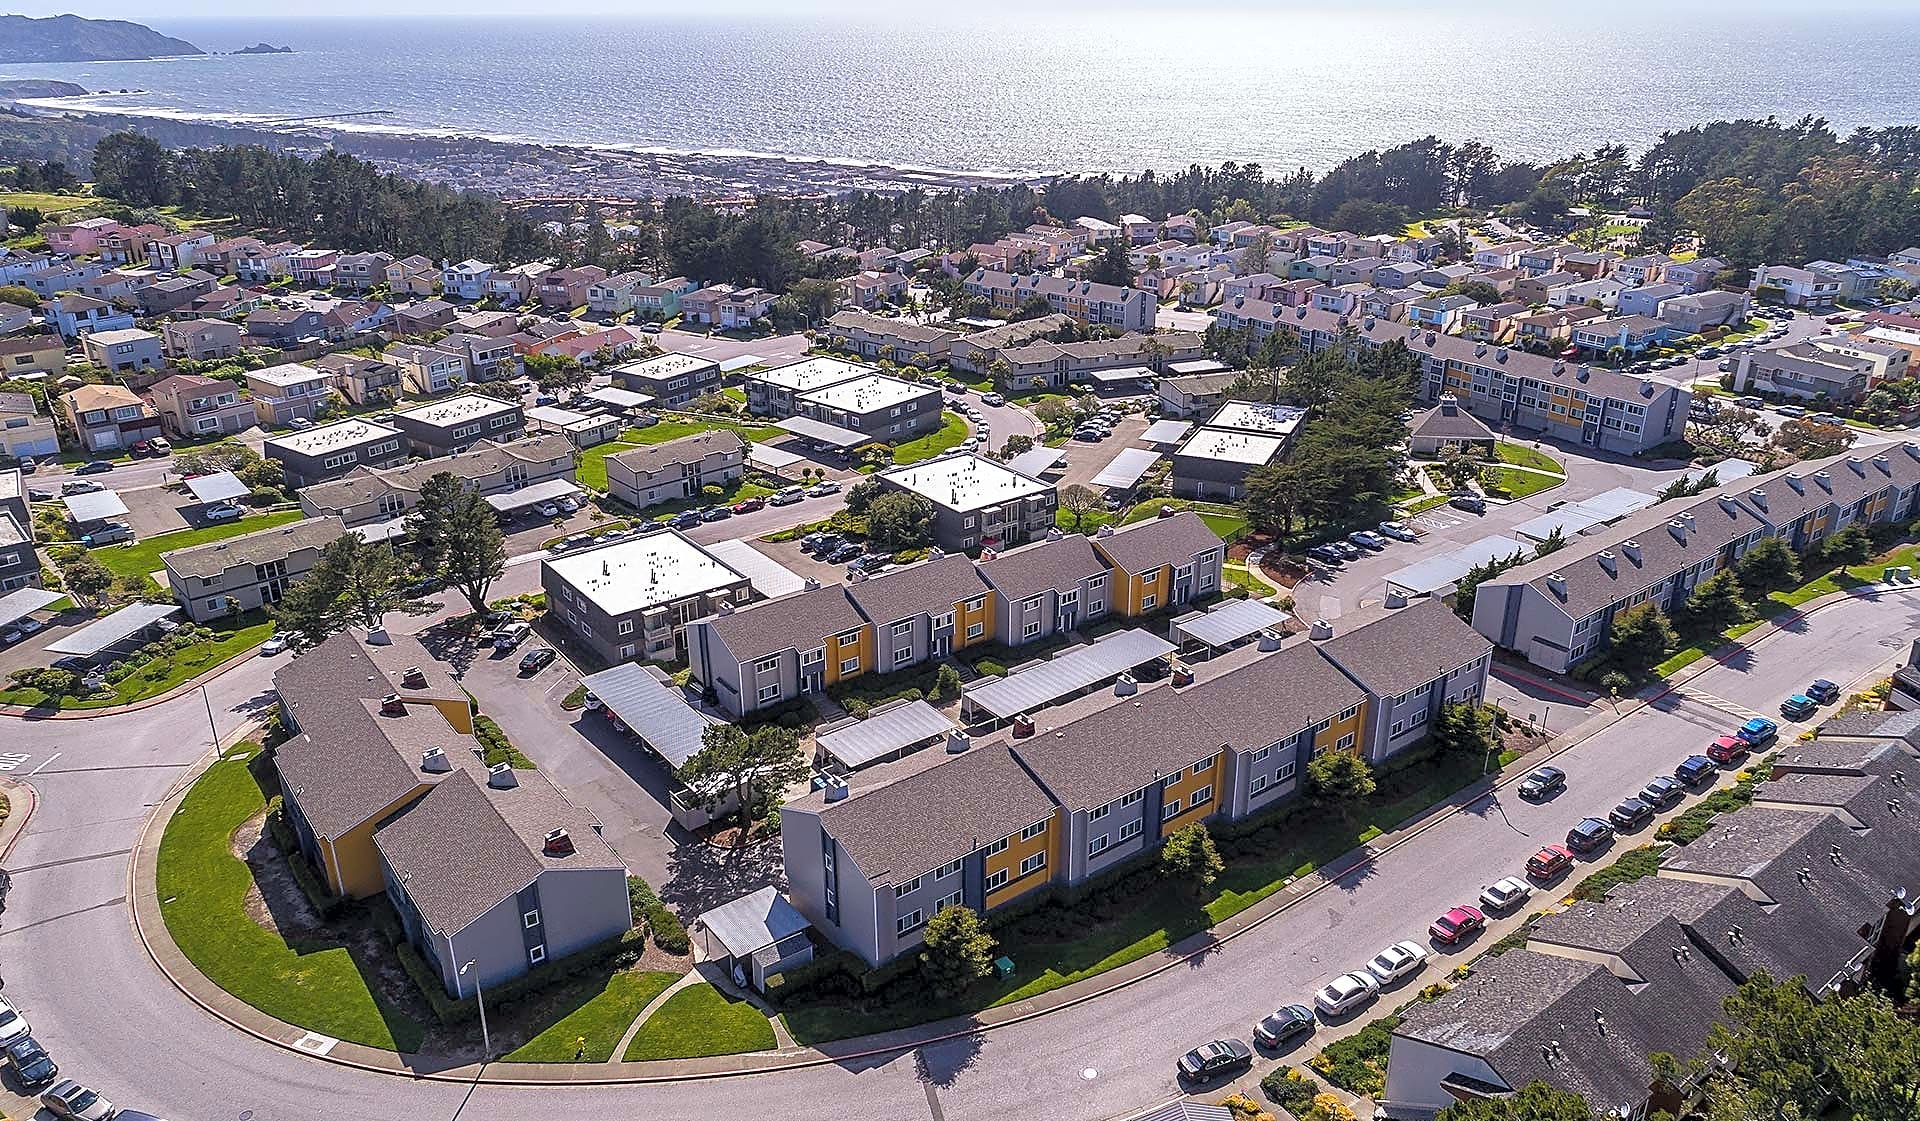 Our community is ideally located near the ocean